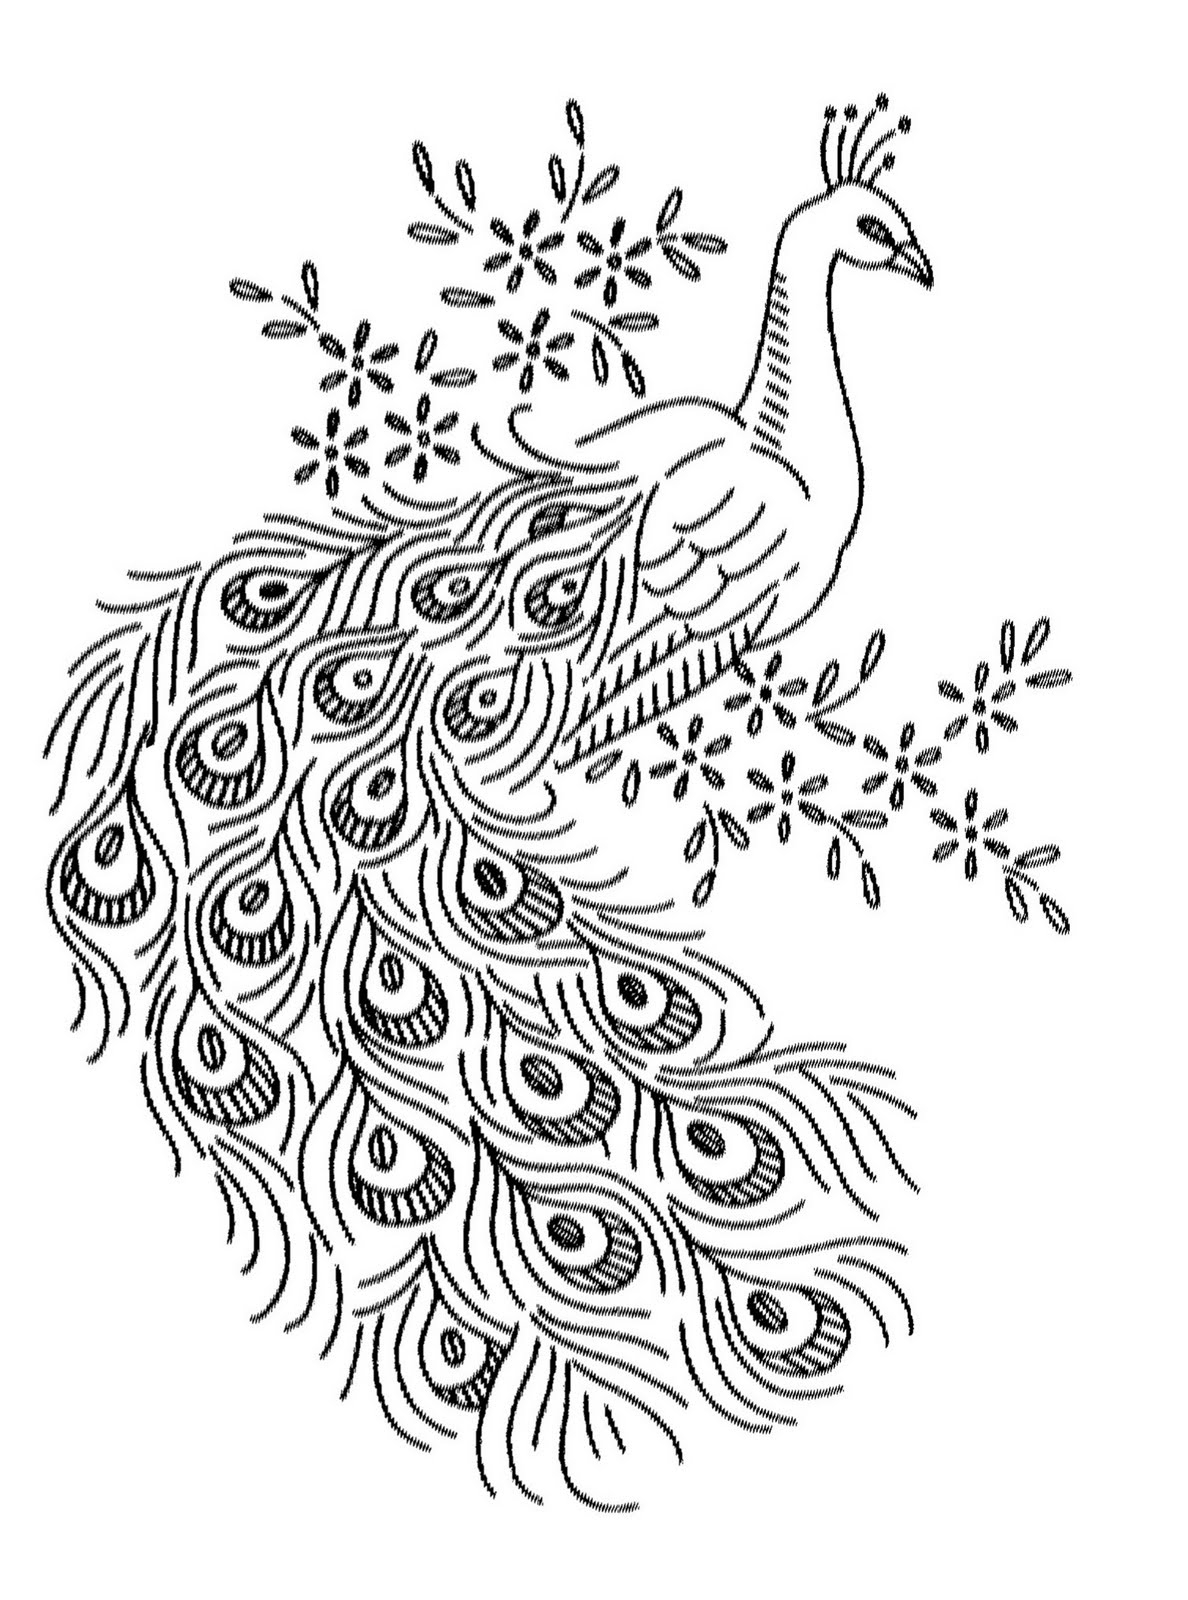 peacok drawing peacock drawing black and white at paintingvalleycom drawing peacok